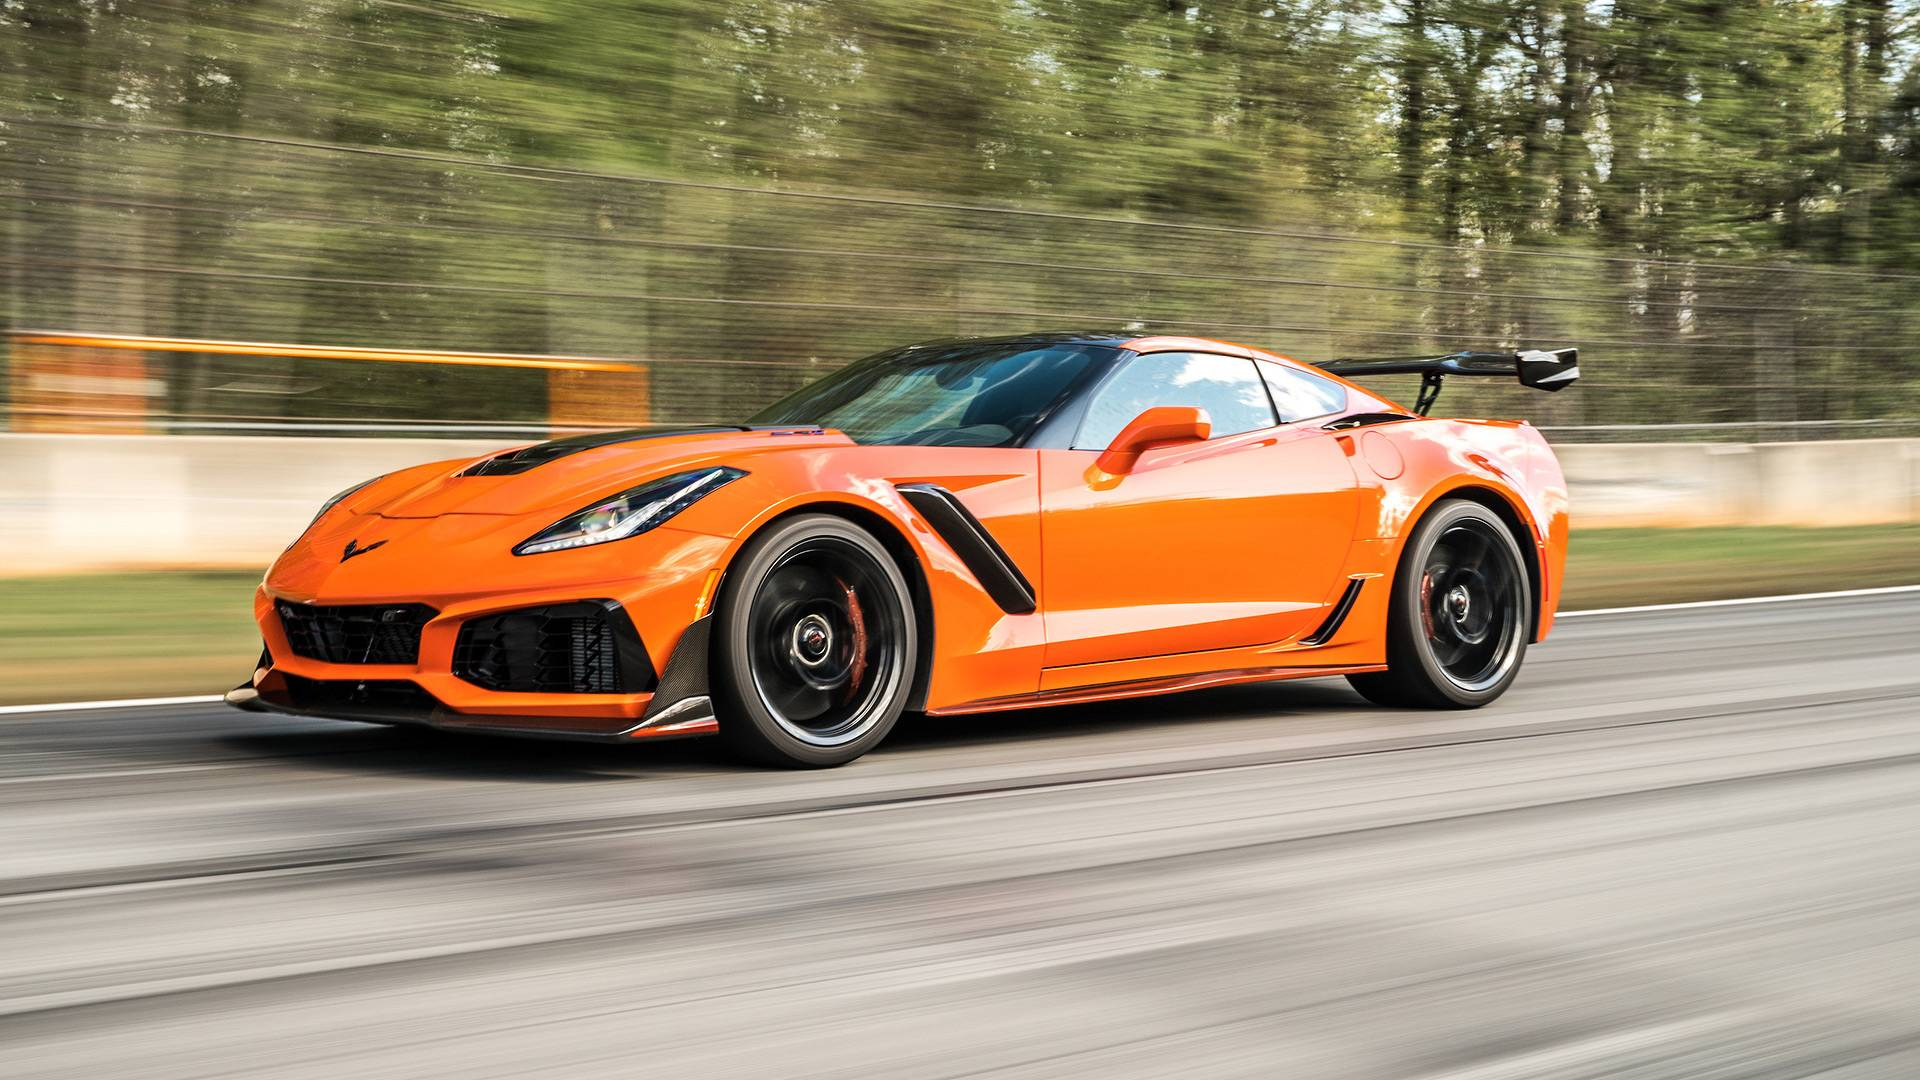 Ford GT Roll Races Corvette ZR1, The Result Might Surprise You